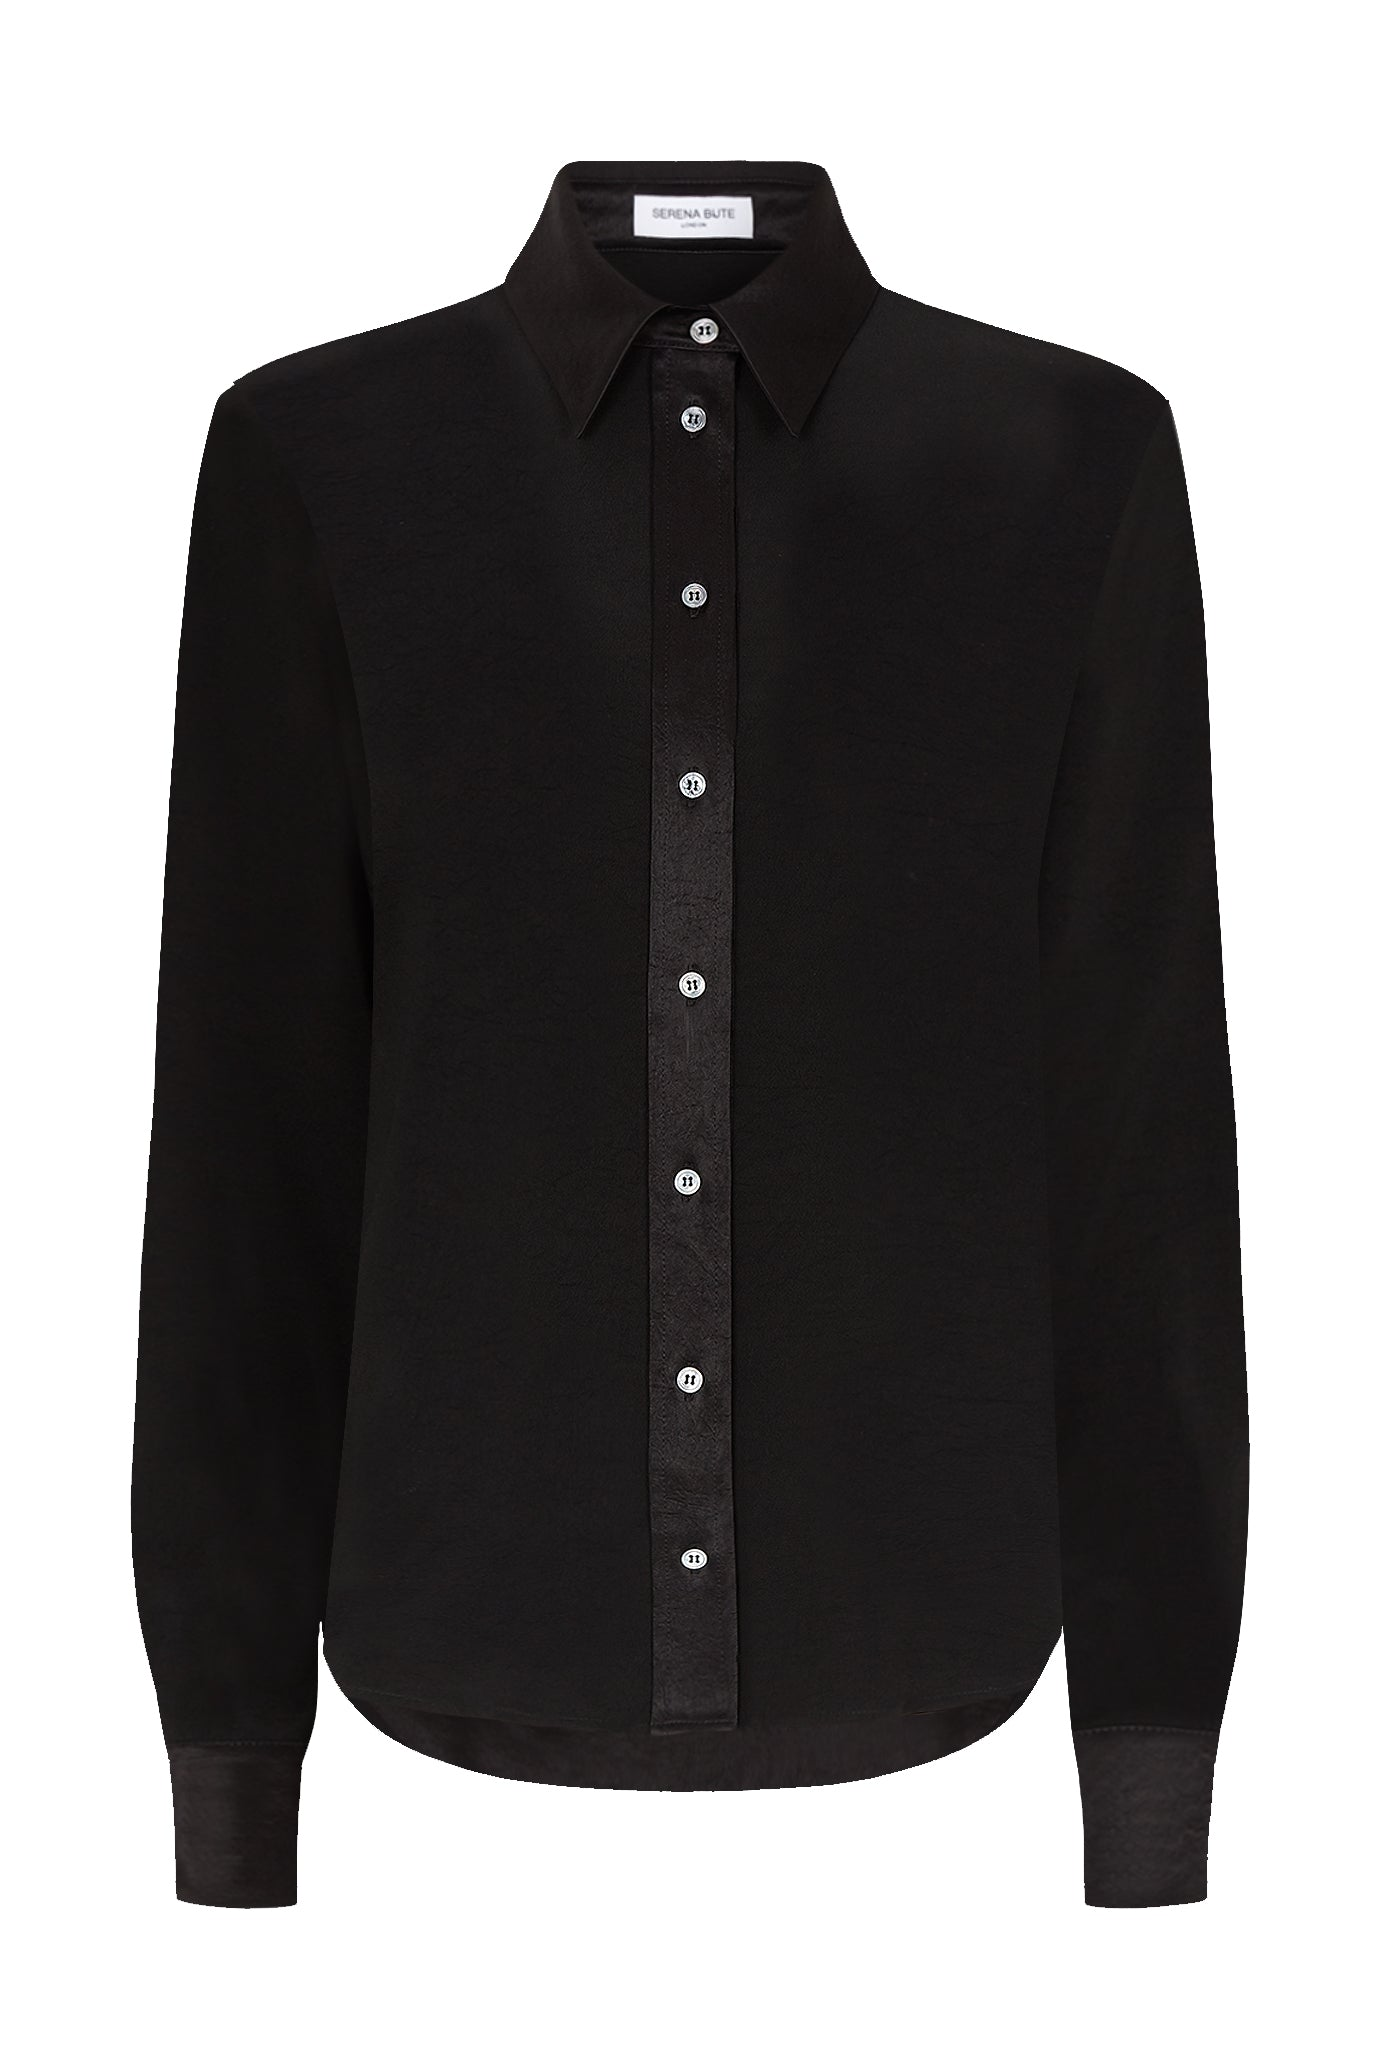 The Slim Shirt - Black Natural Fabric